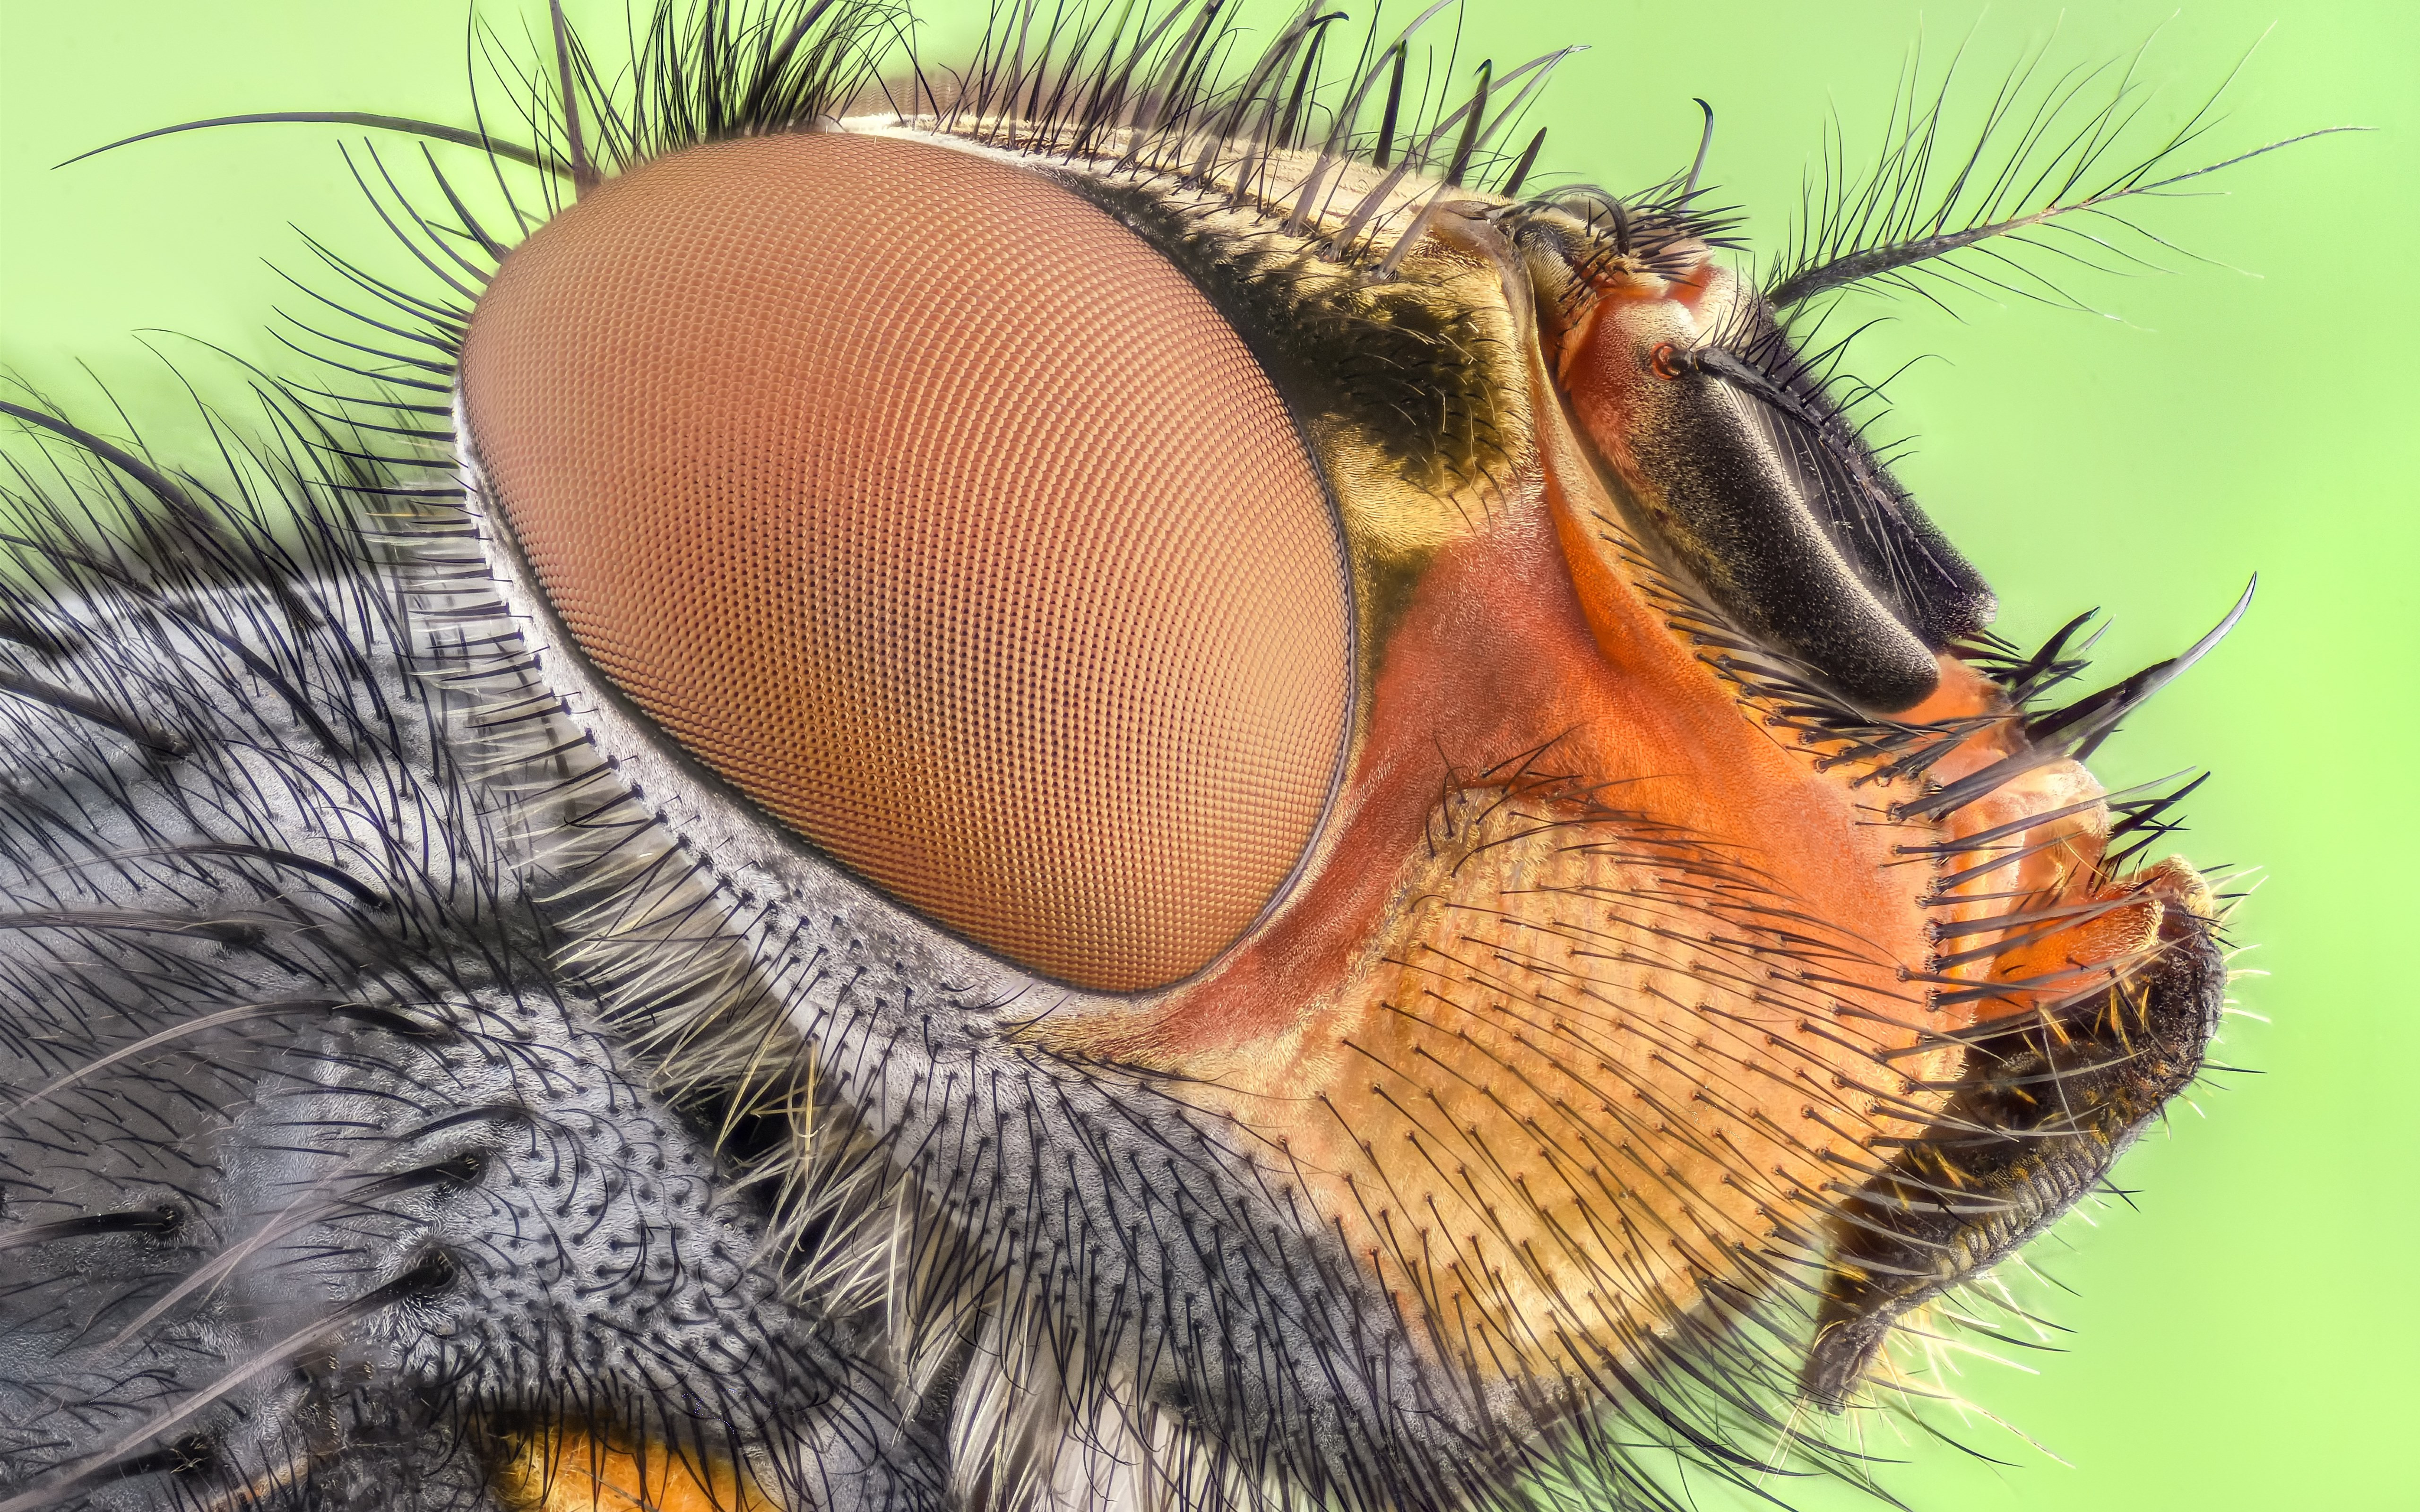 Close up insect portrait | 5120x3200 wallpaper